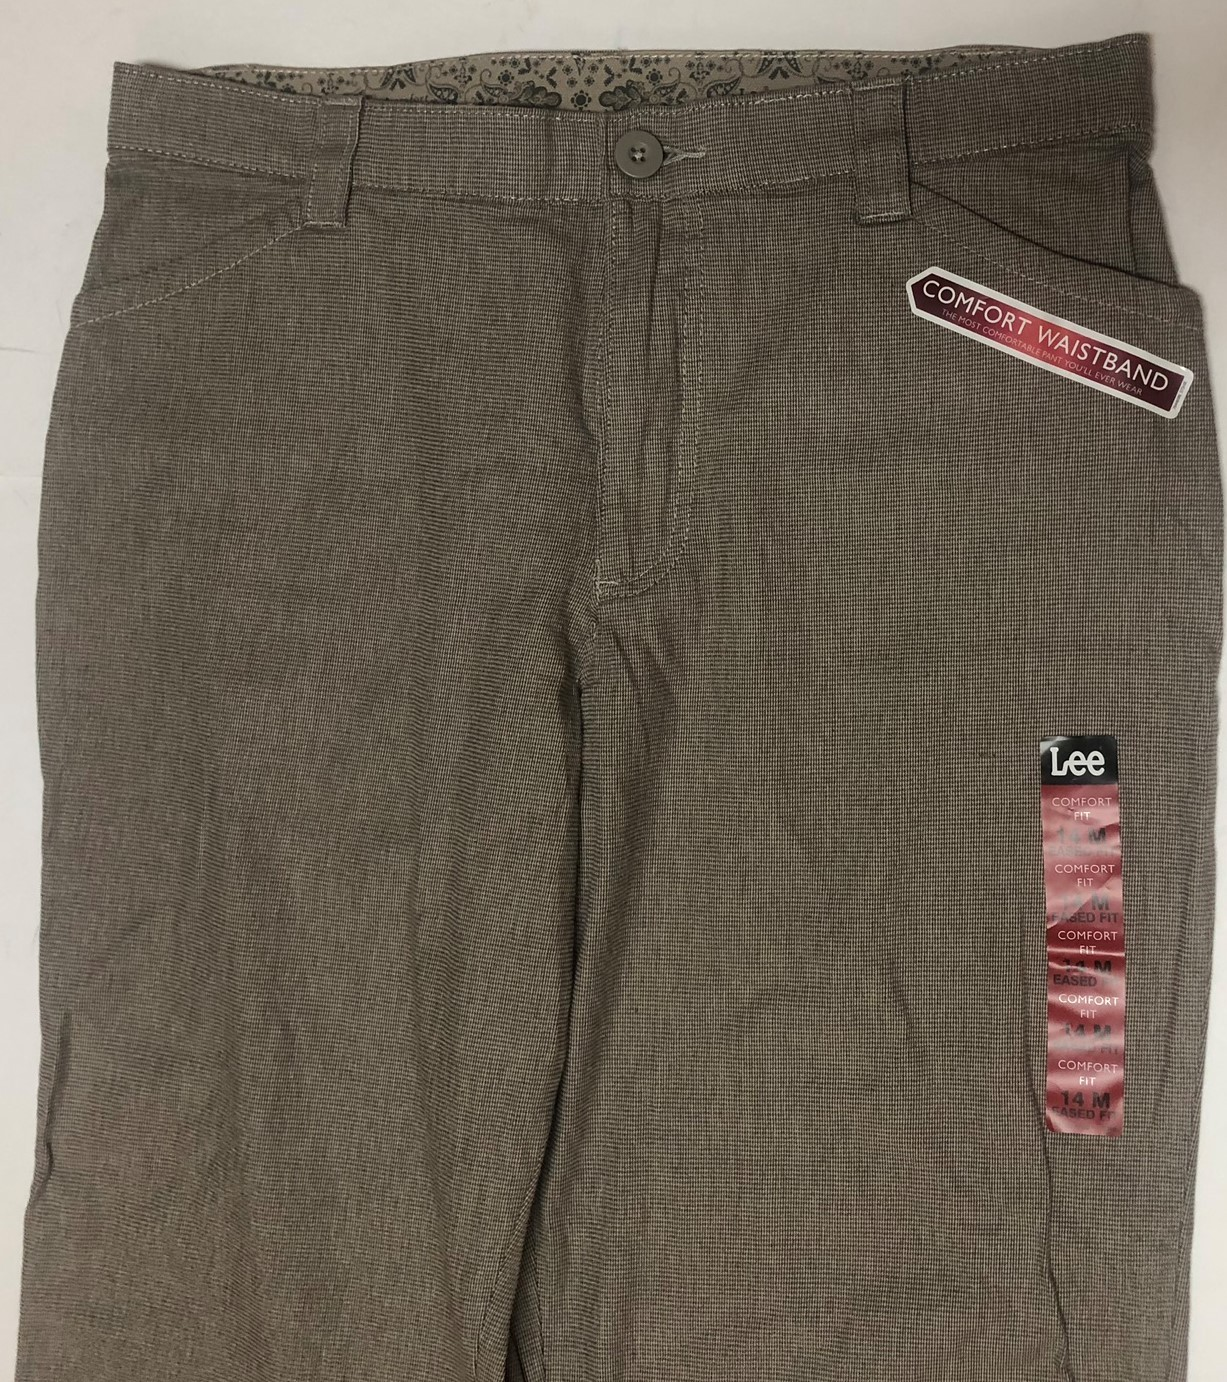 Lee Comfort Fit Casual Pants Women's Sz 14M Gray Small Plaid image 3